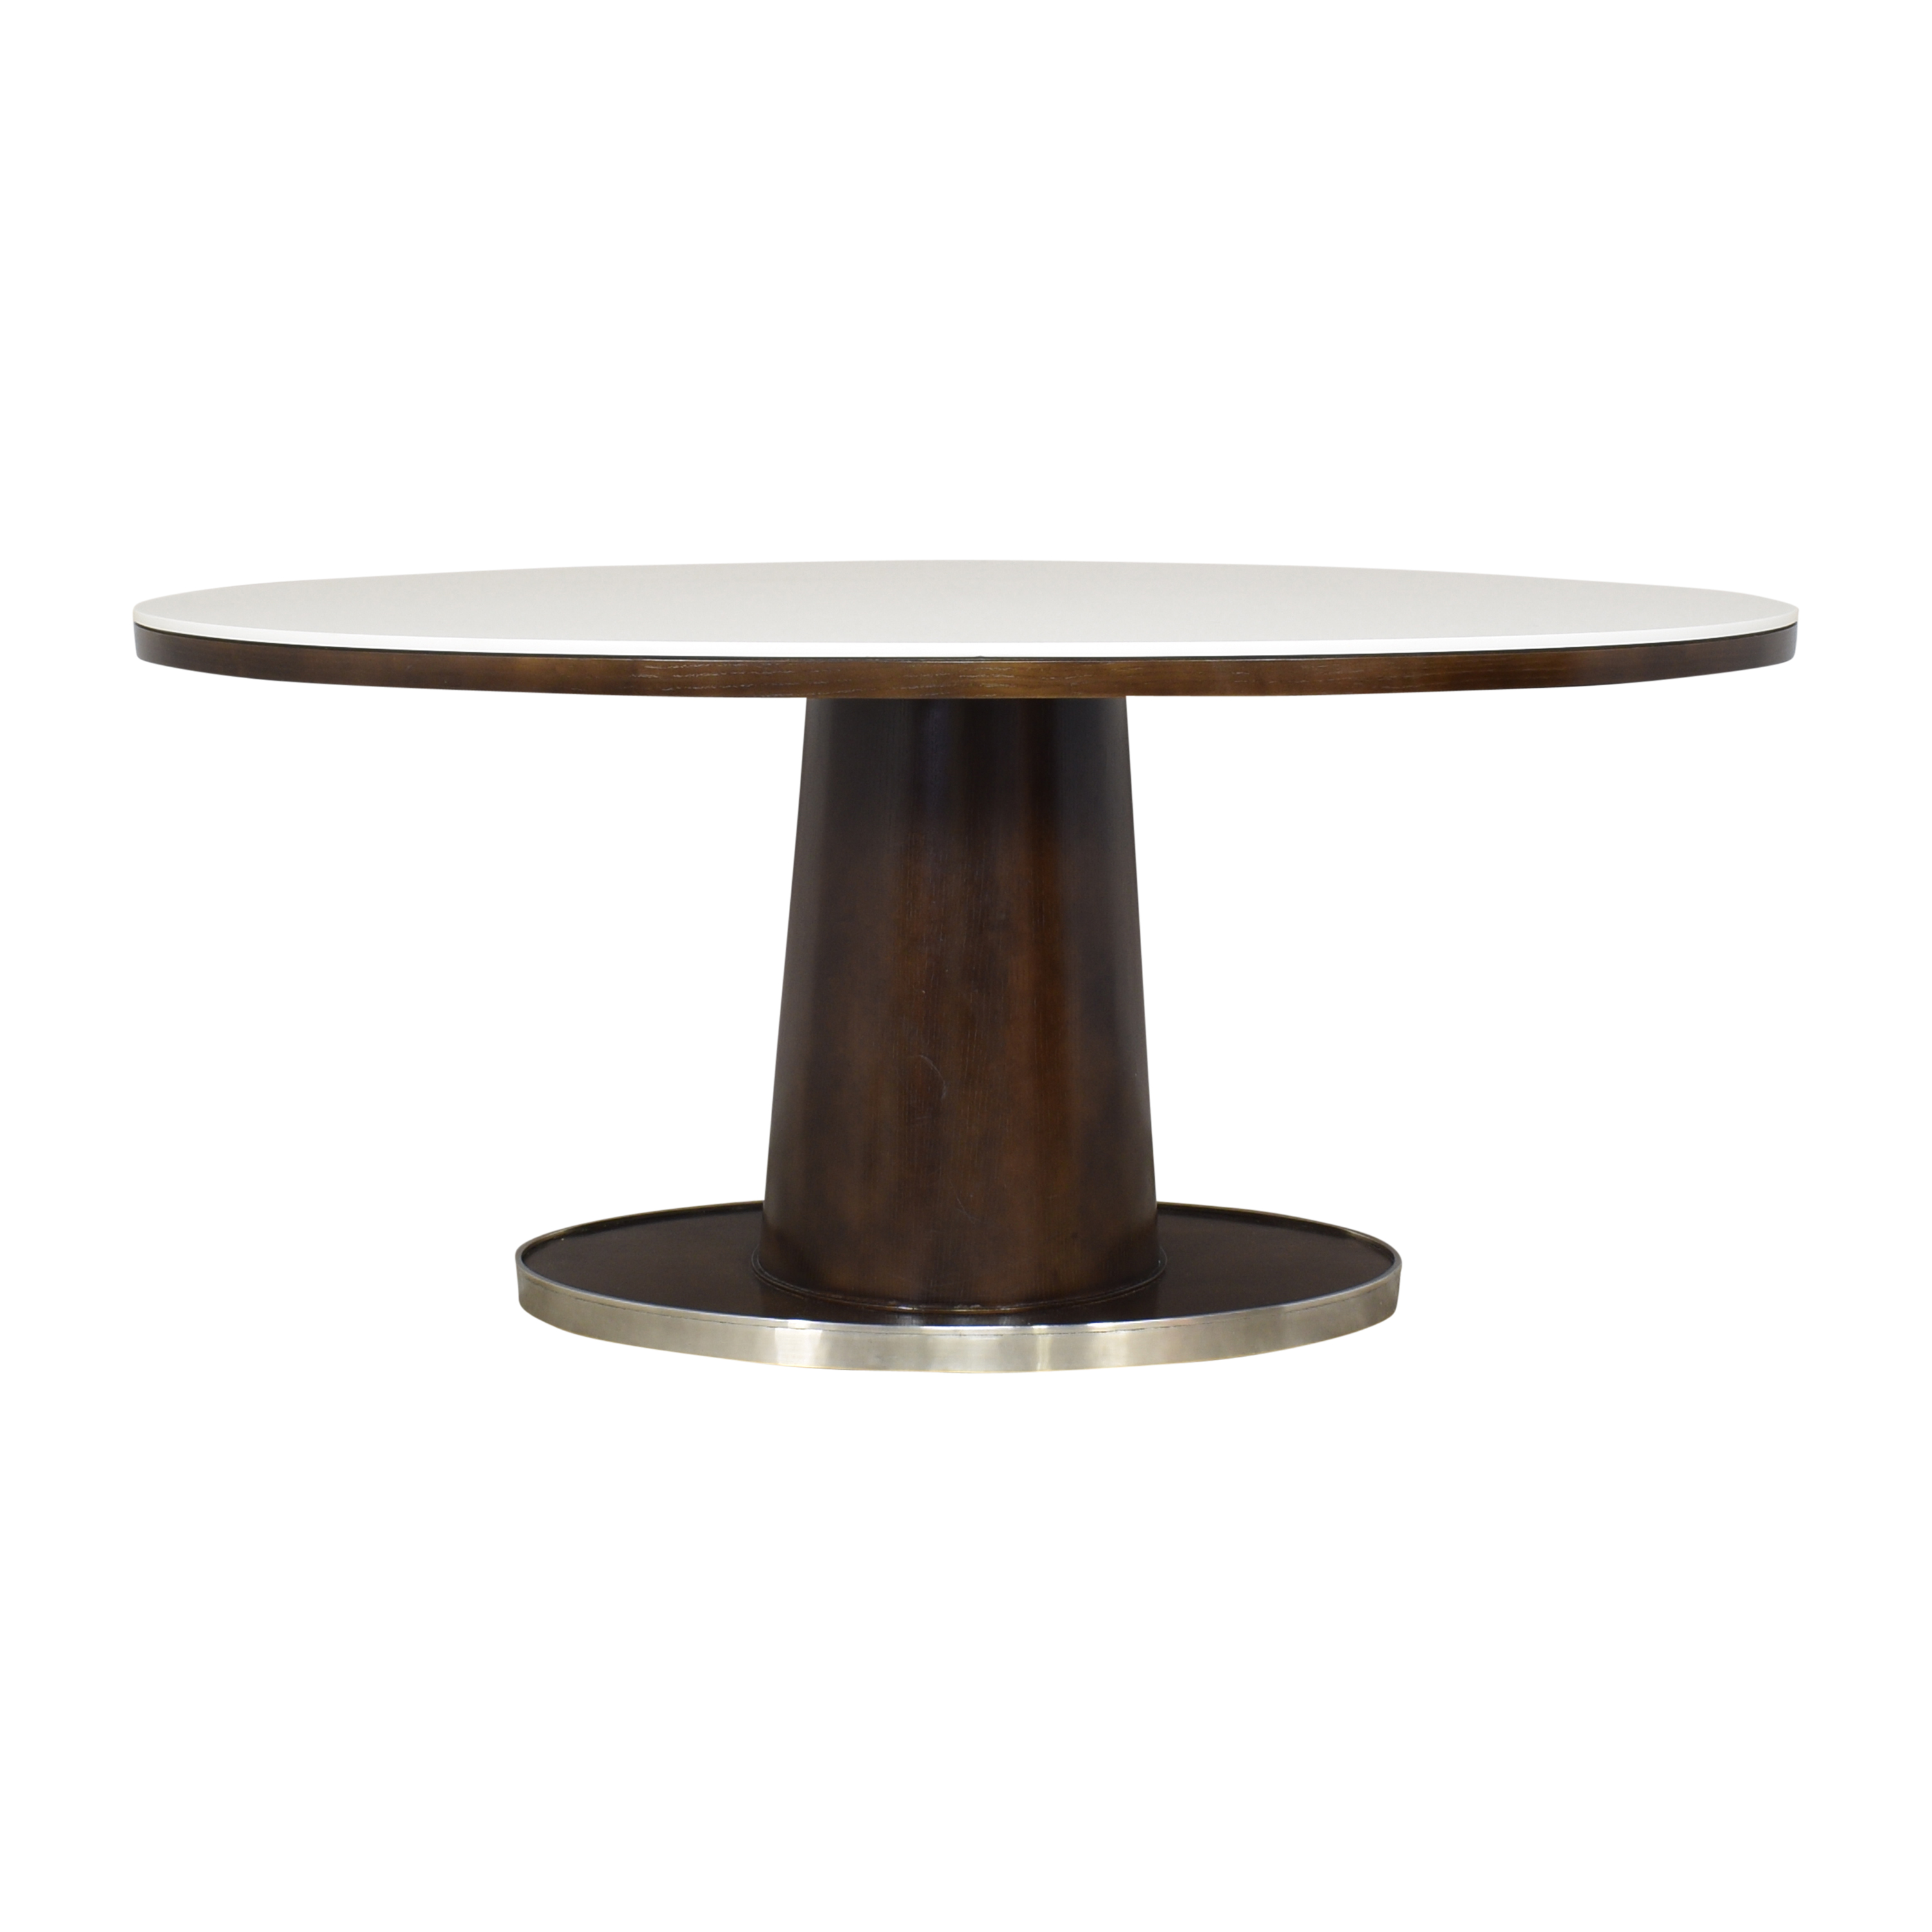 shop McGuire Barbara Barry Classic Oval Pedestal Table McGuire Dinner Tables